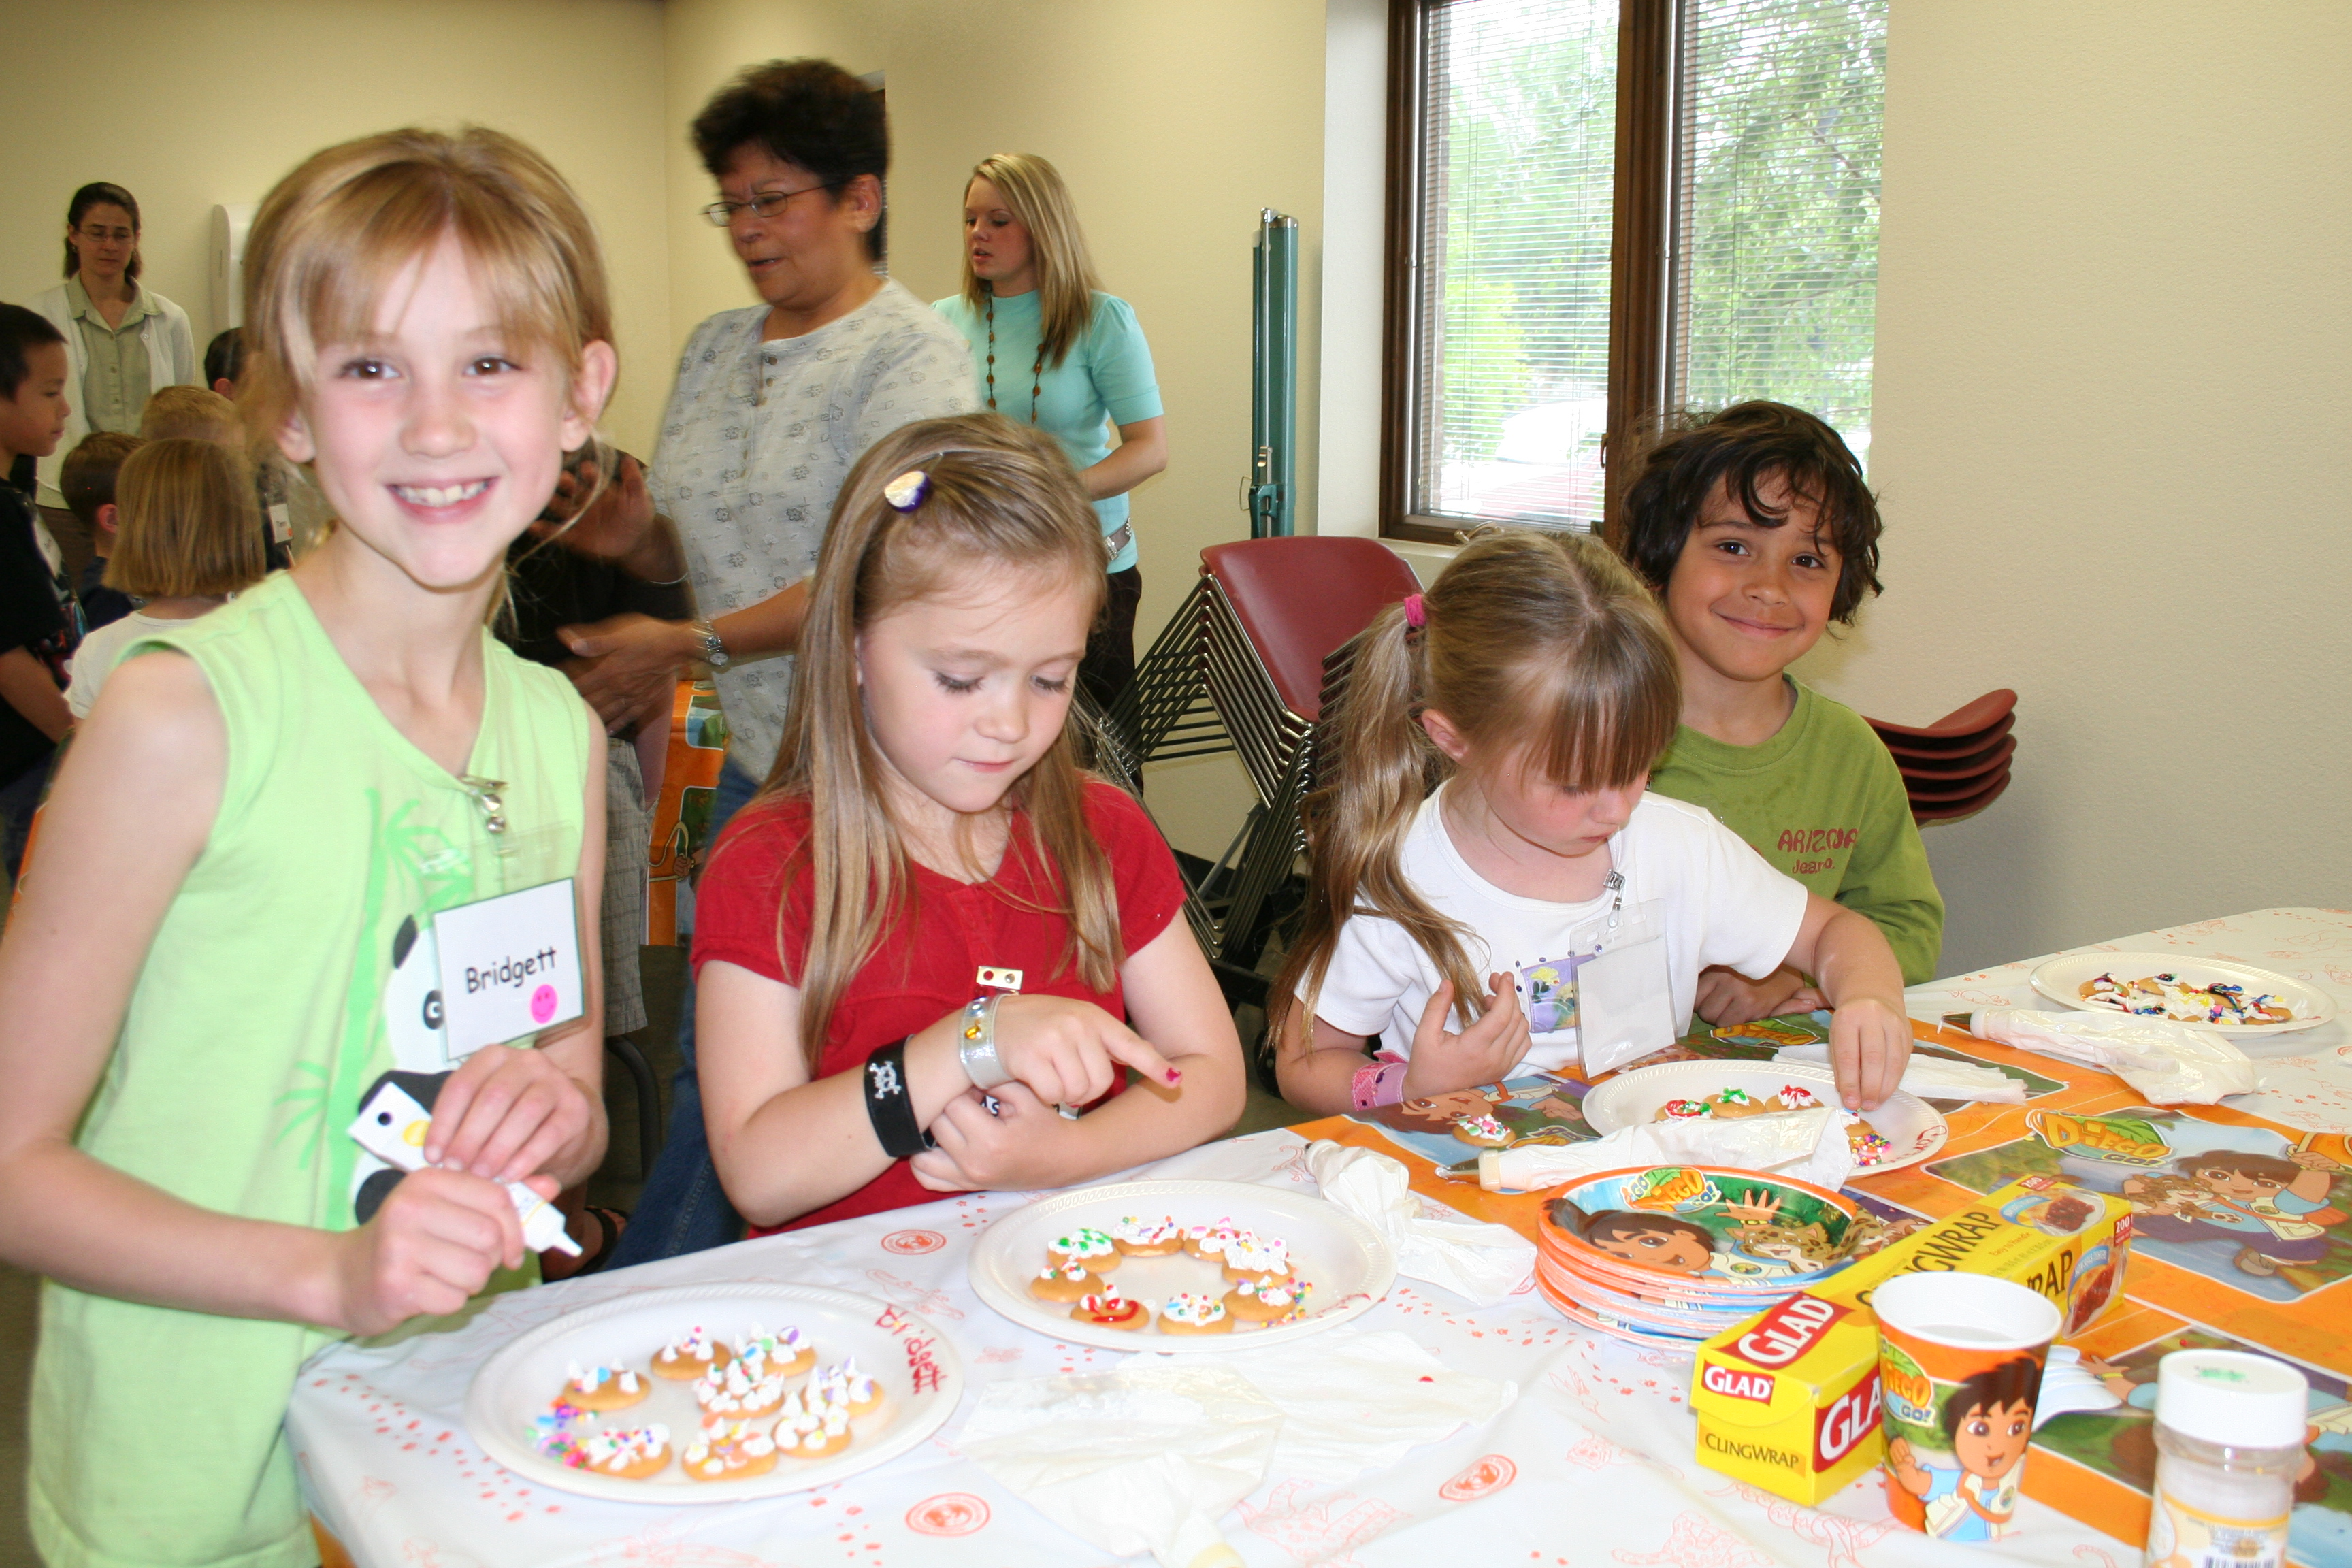 Children decorating cookies.